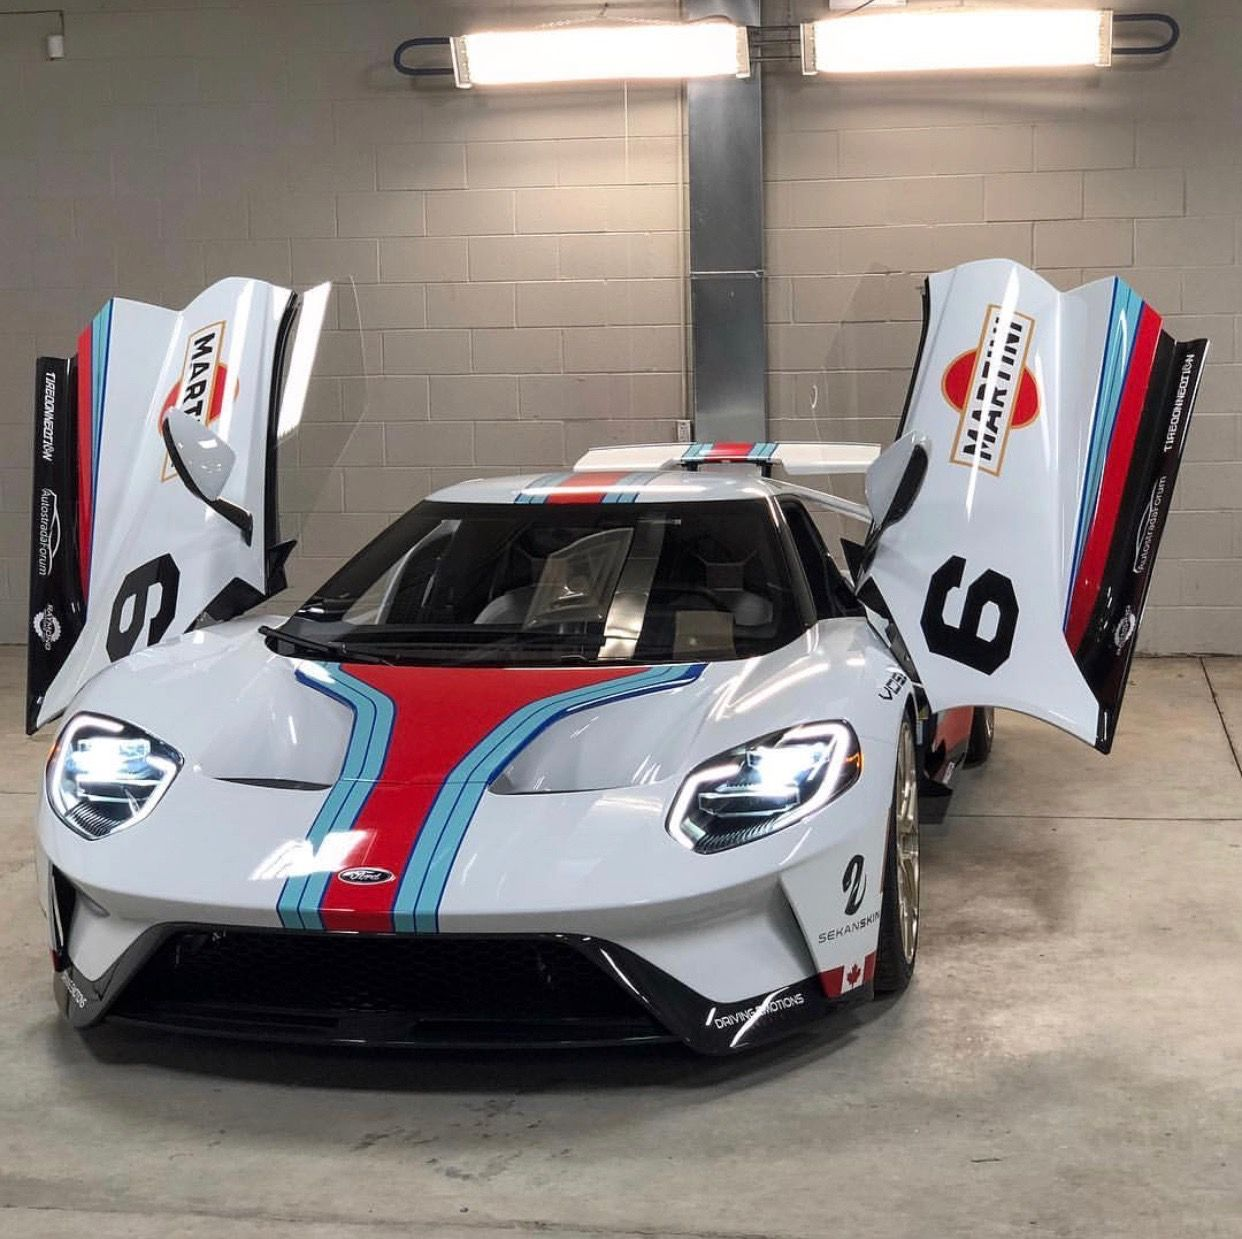 Ford Gt Painted In White W A Full Martini Livery A Black Number 6 Under Each Side View Mirror And A Set Of Vossen Forged S17 0 Ford Gt Ford New Sports Cars